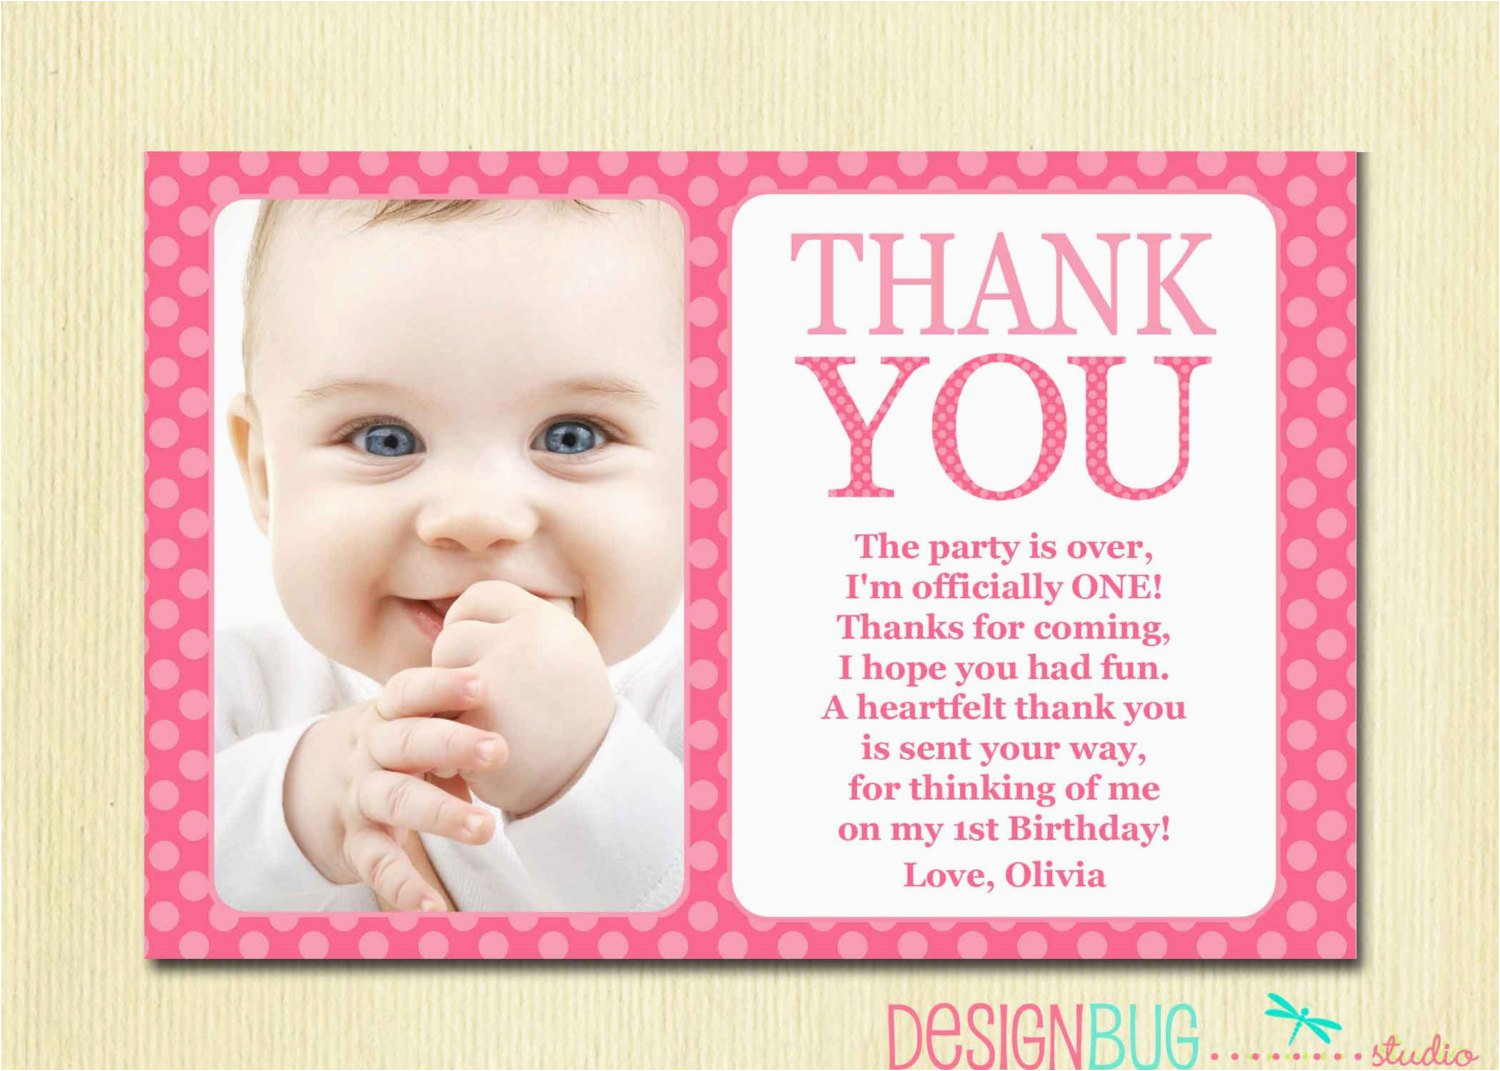 Thank You Cards for 1st Birthday First Birthday Matching Thank You Card 4×6 the Big One Diy